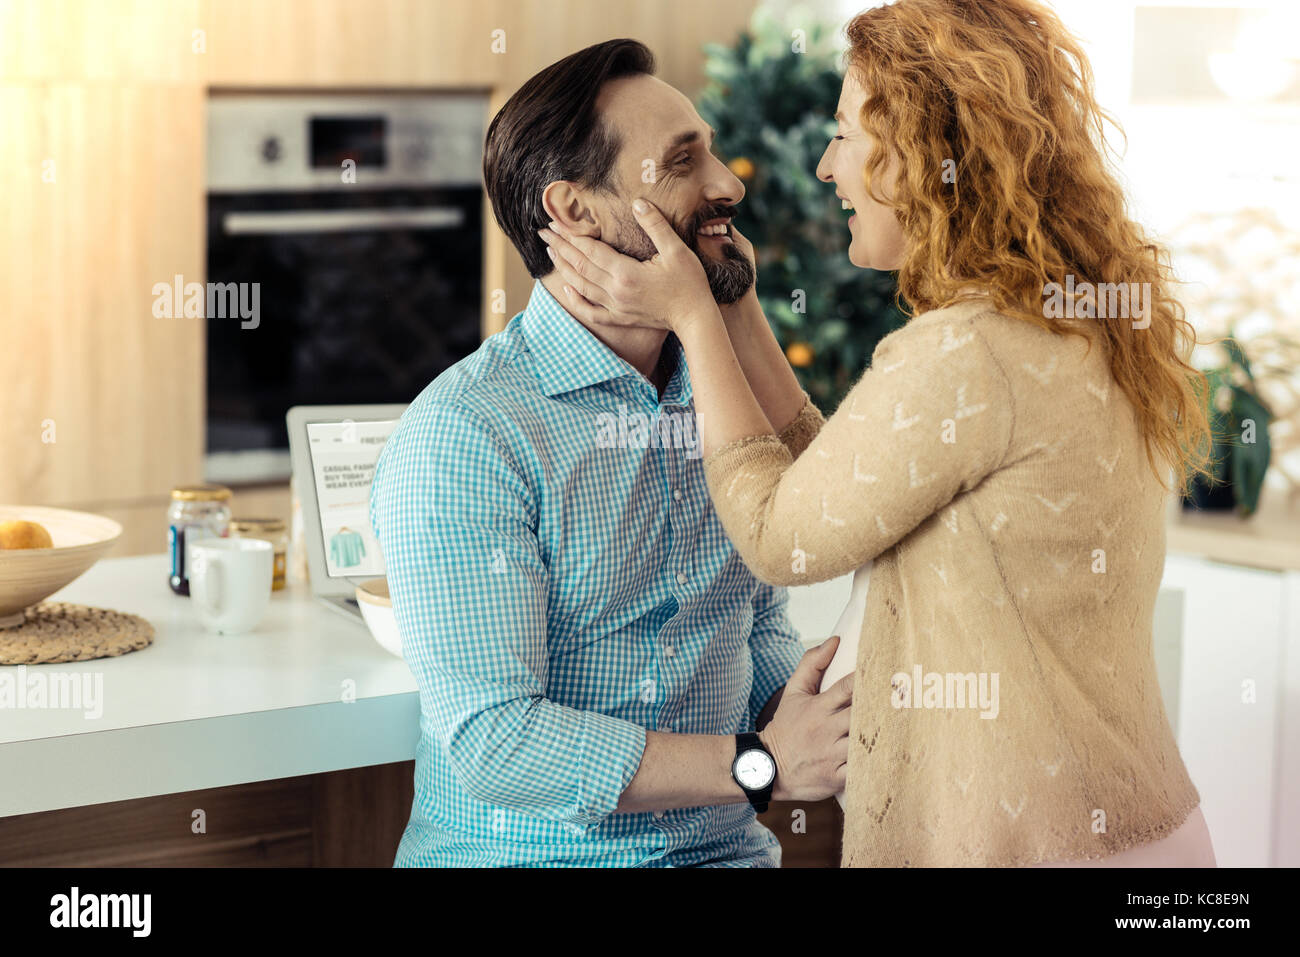 Adorable woman touching her husbands face - Stock Image